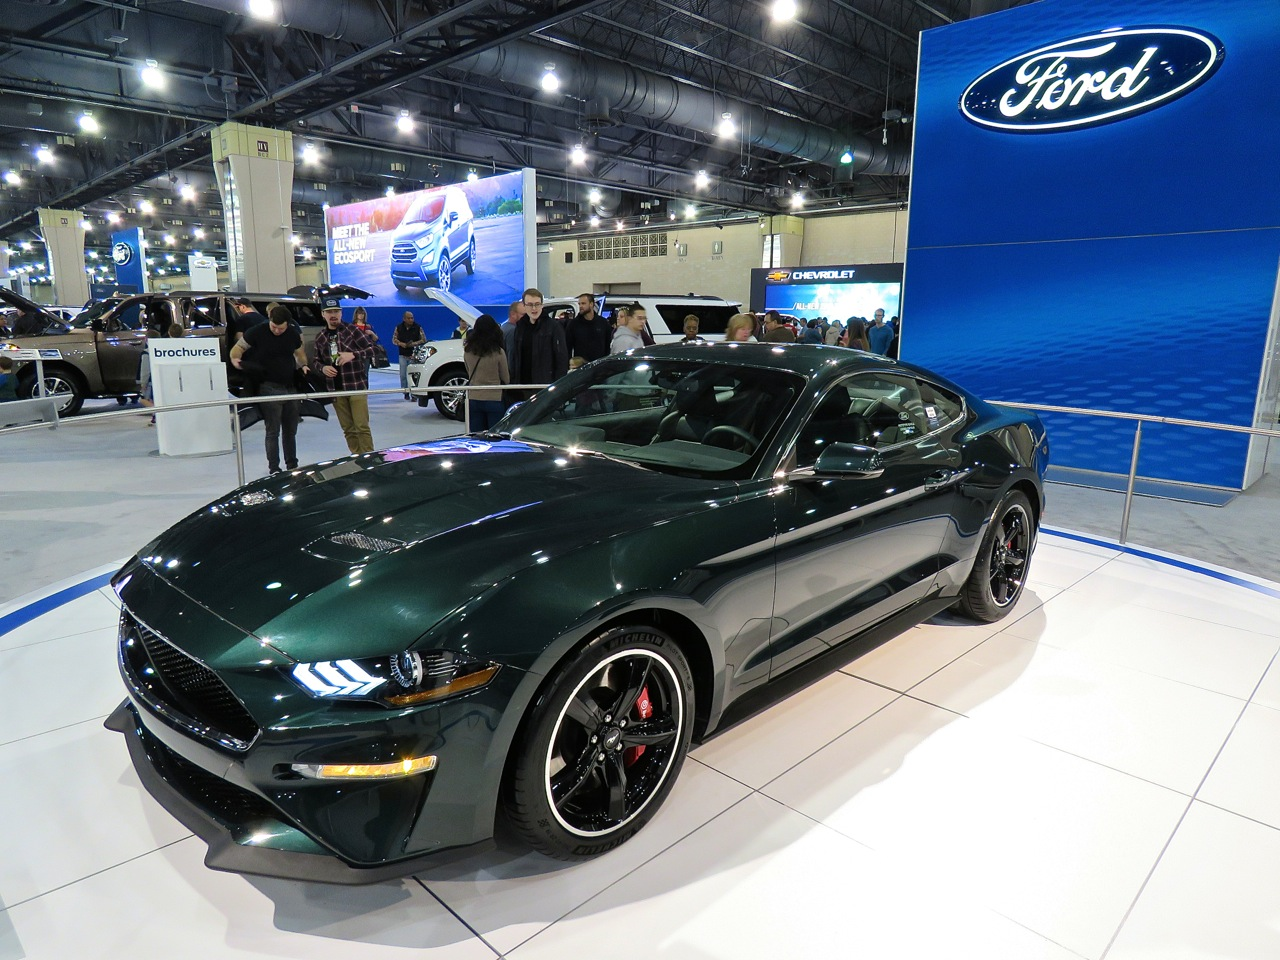 Ford Mustang Bullitt S550 Philly